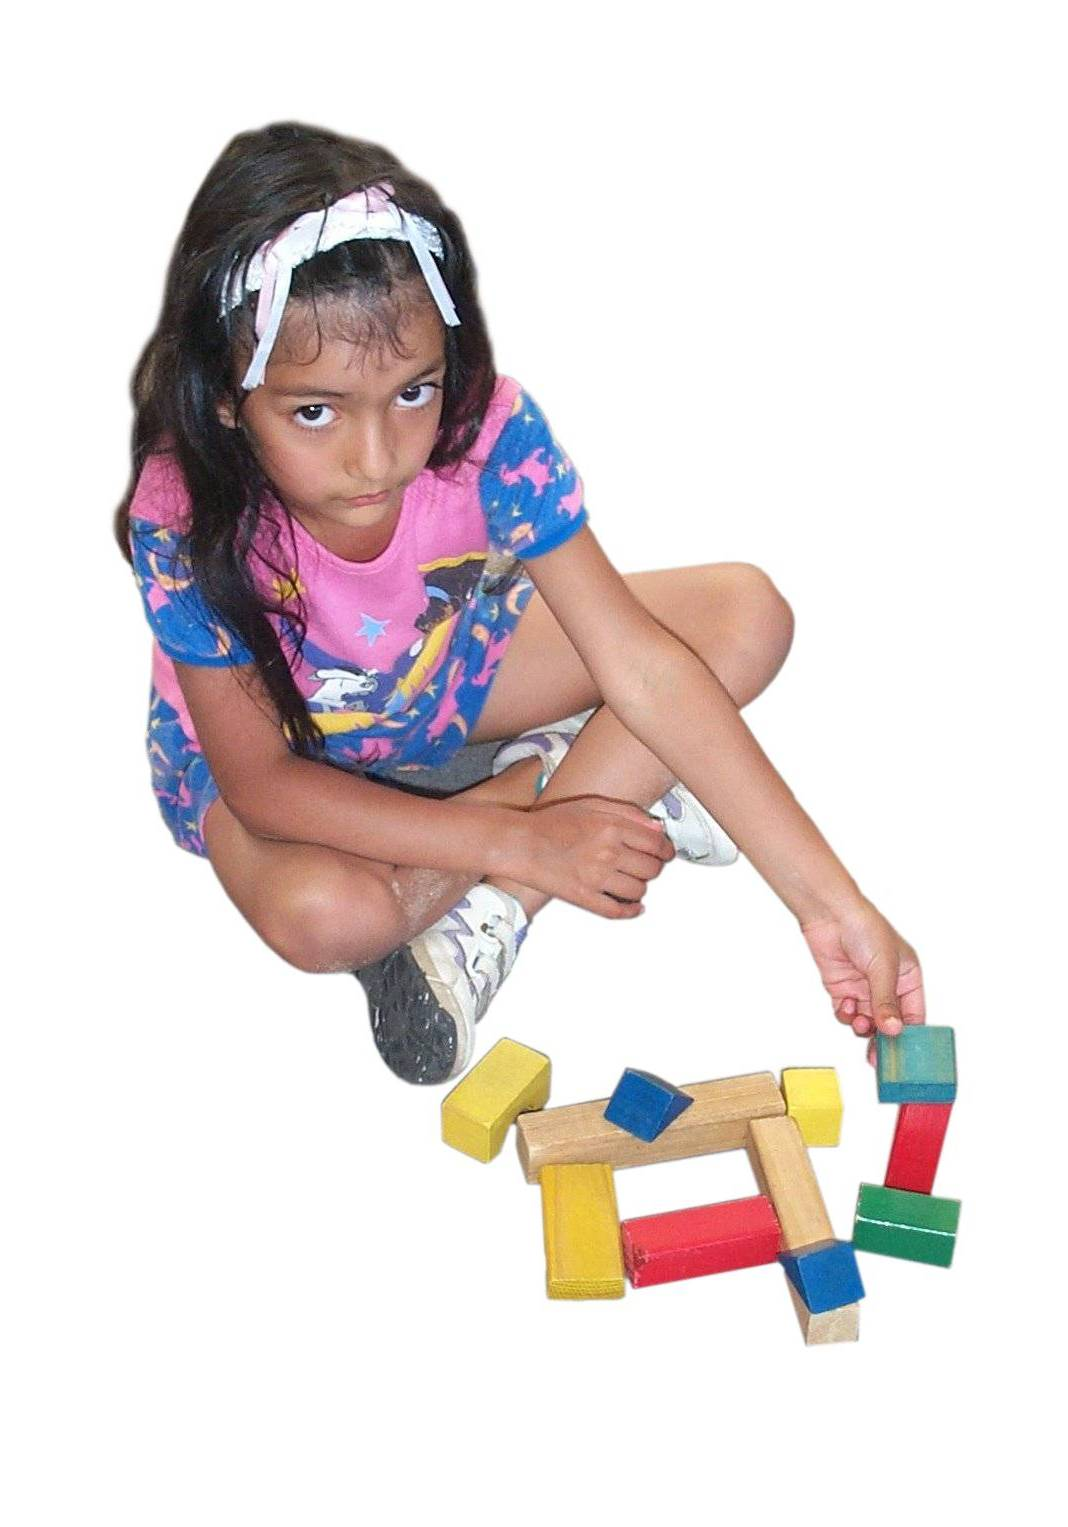 Playing with blocks (Small).jpg